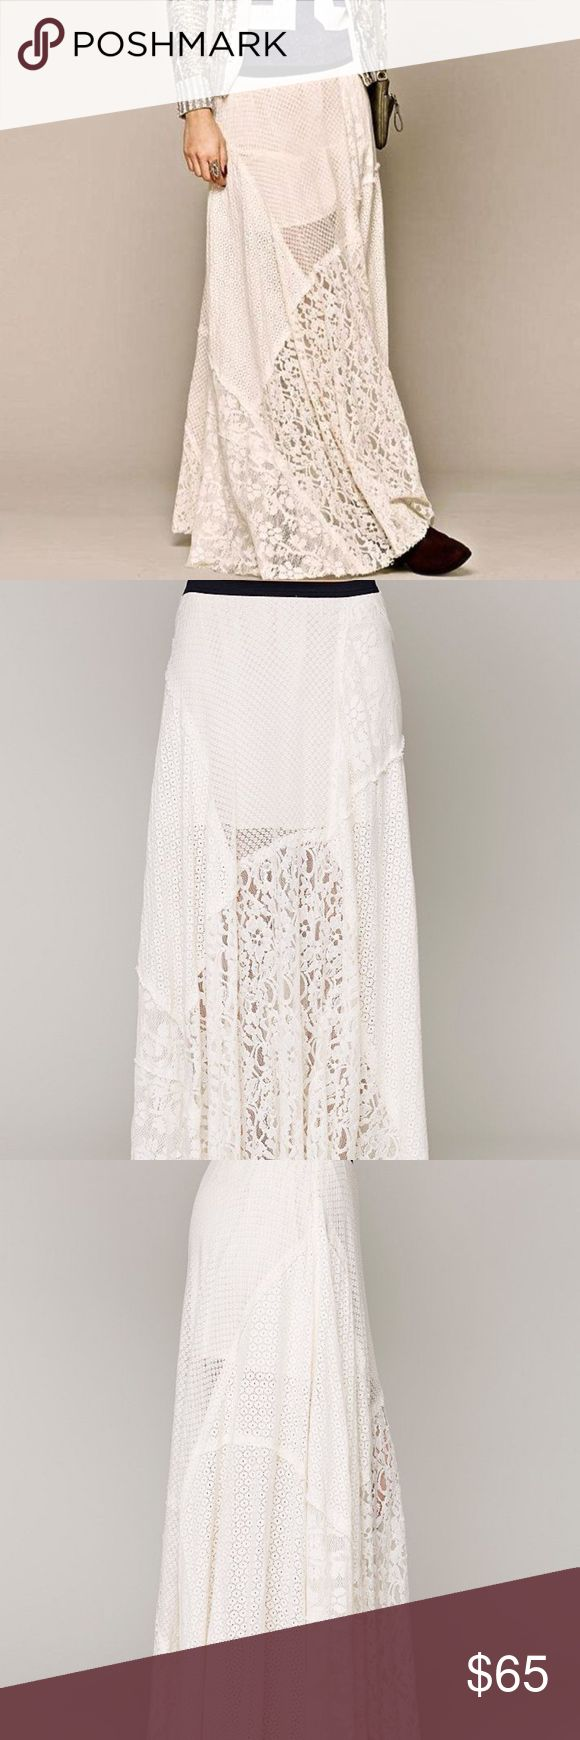 Free People FP1 Patchwork Lace Maxi Skirt RARE Patchwork maxi skirt Ivory  80% cotton * 20% nylon Made in India Free People Skirts Maxi